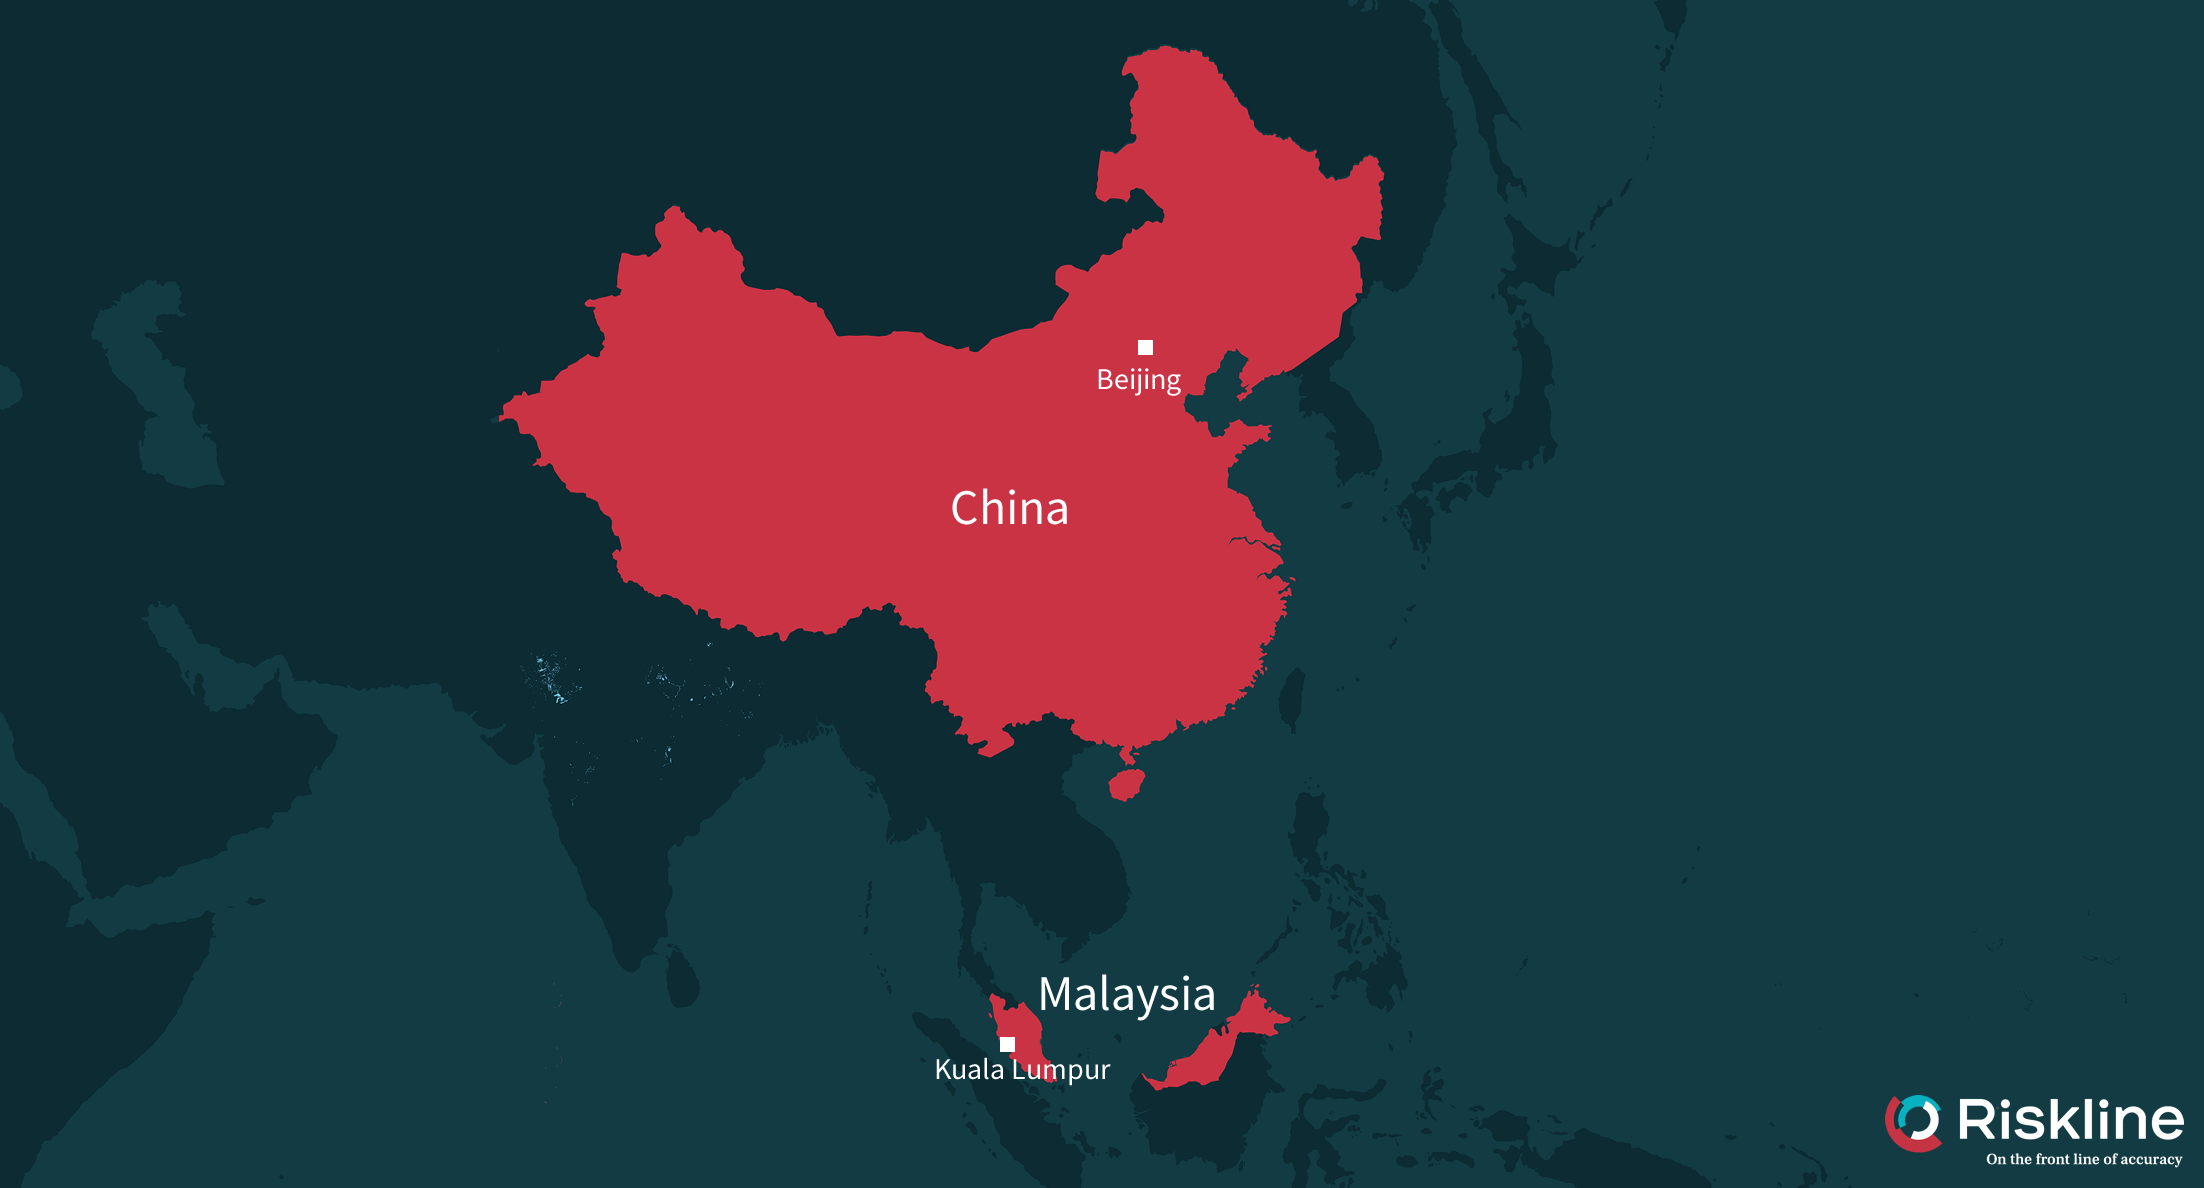 malaysia and china map The Future Of Malaysia China Relations Will Pakatan Harapan S Electoral Victory Lead To A Deterioration Of Bilateral Relations malaysia and china map